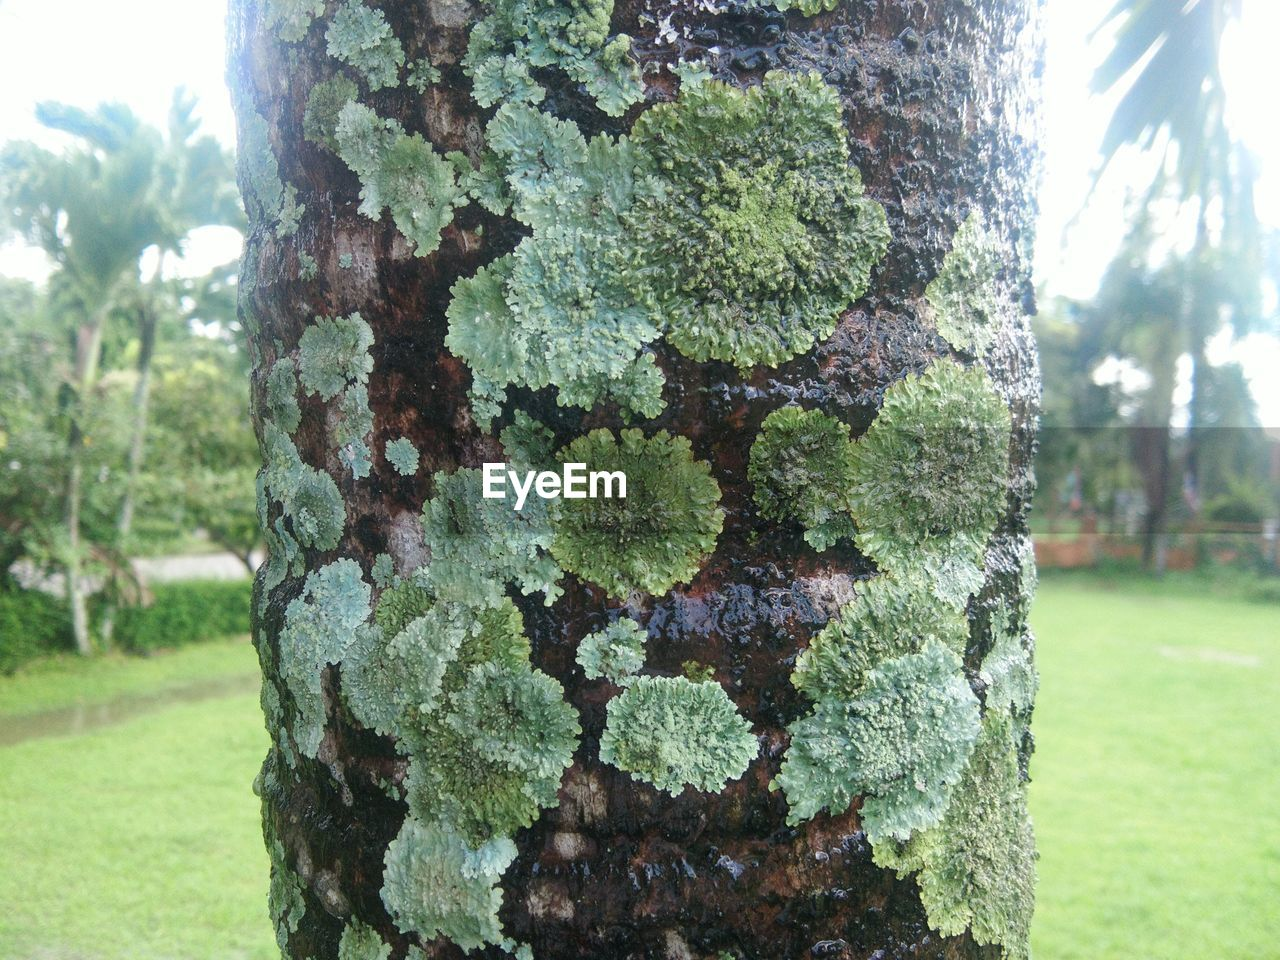 tree, tree trunk, trunk, plant, focus on foreground, growth, nature, day, close-up, green color, outdoors, no people, park, land, textured, moss, grass, field, rough, plant bark, bark, lichen